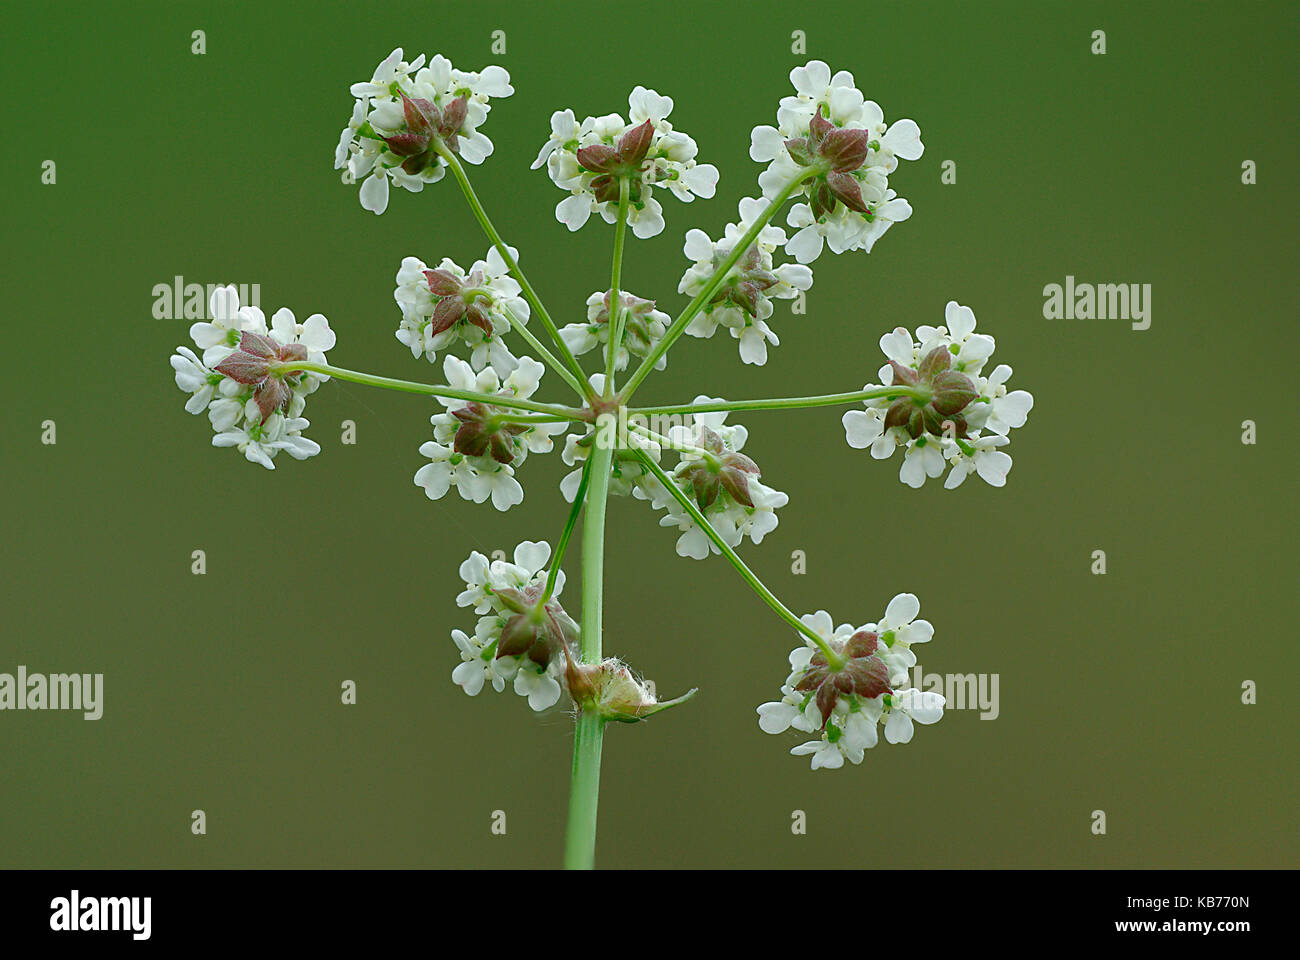 Cow Parsley (Anthriscus sylvestris) flourishing, The Netherlands, Drenthe - Stock Image